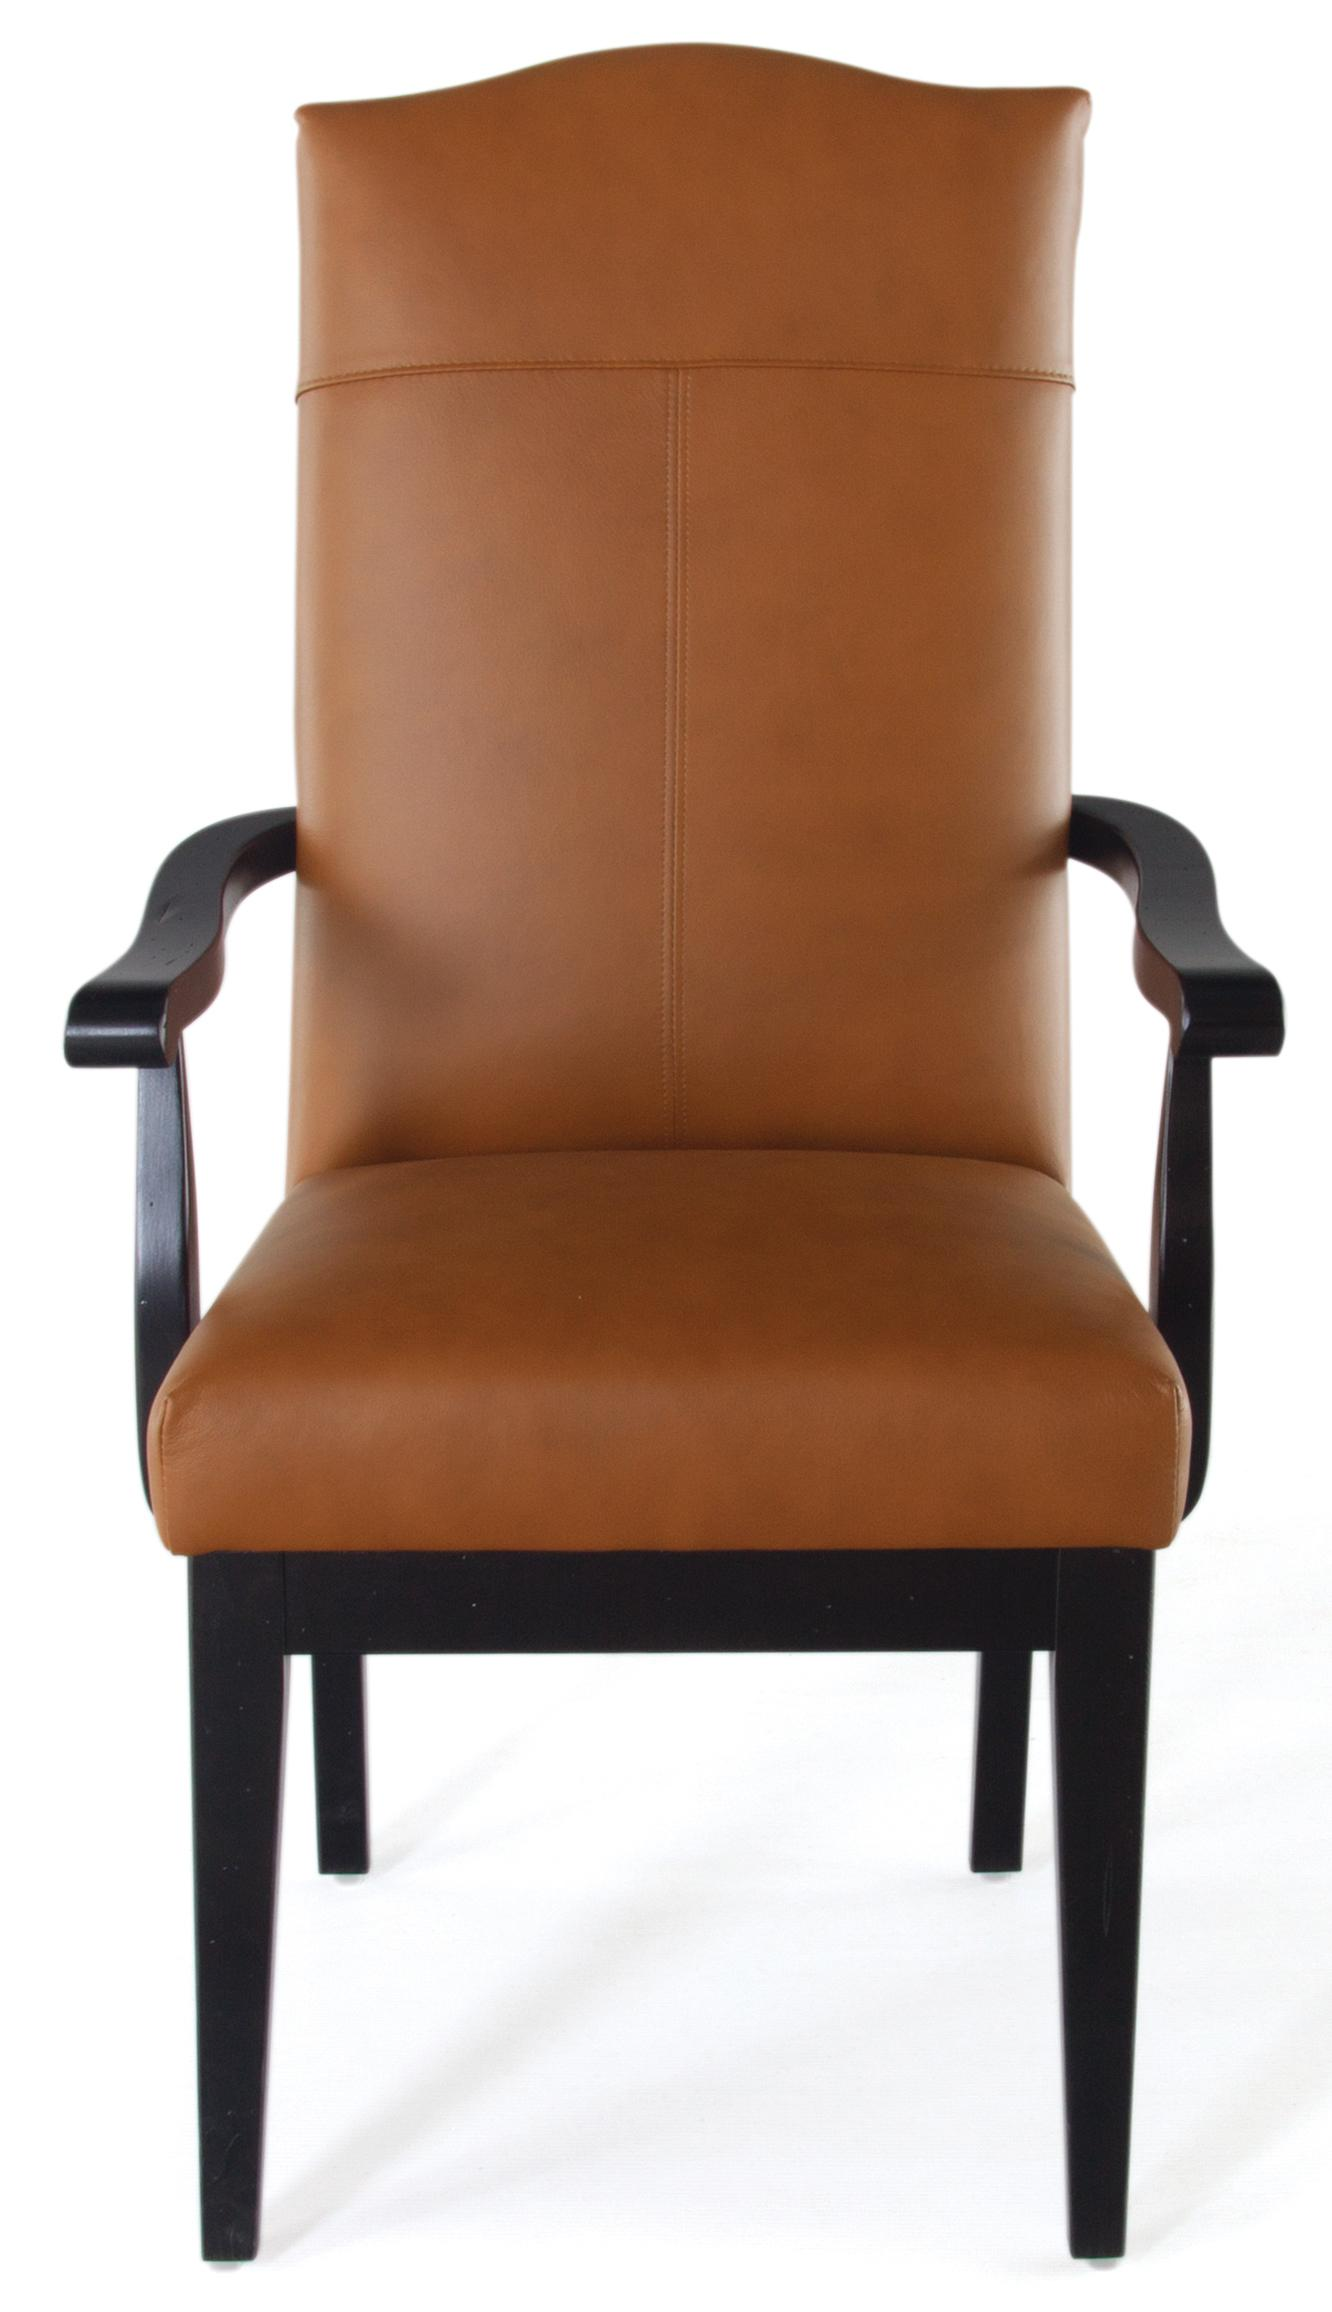 Canadel Loft Custom Dining Customizable Upholstered Arm Chair Dunk & Bright Furniture